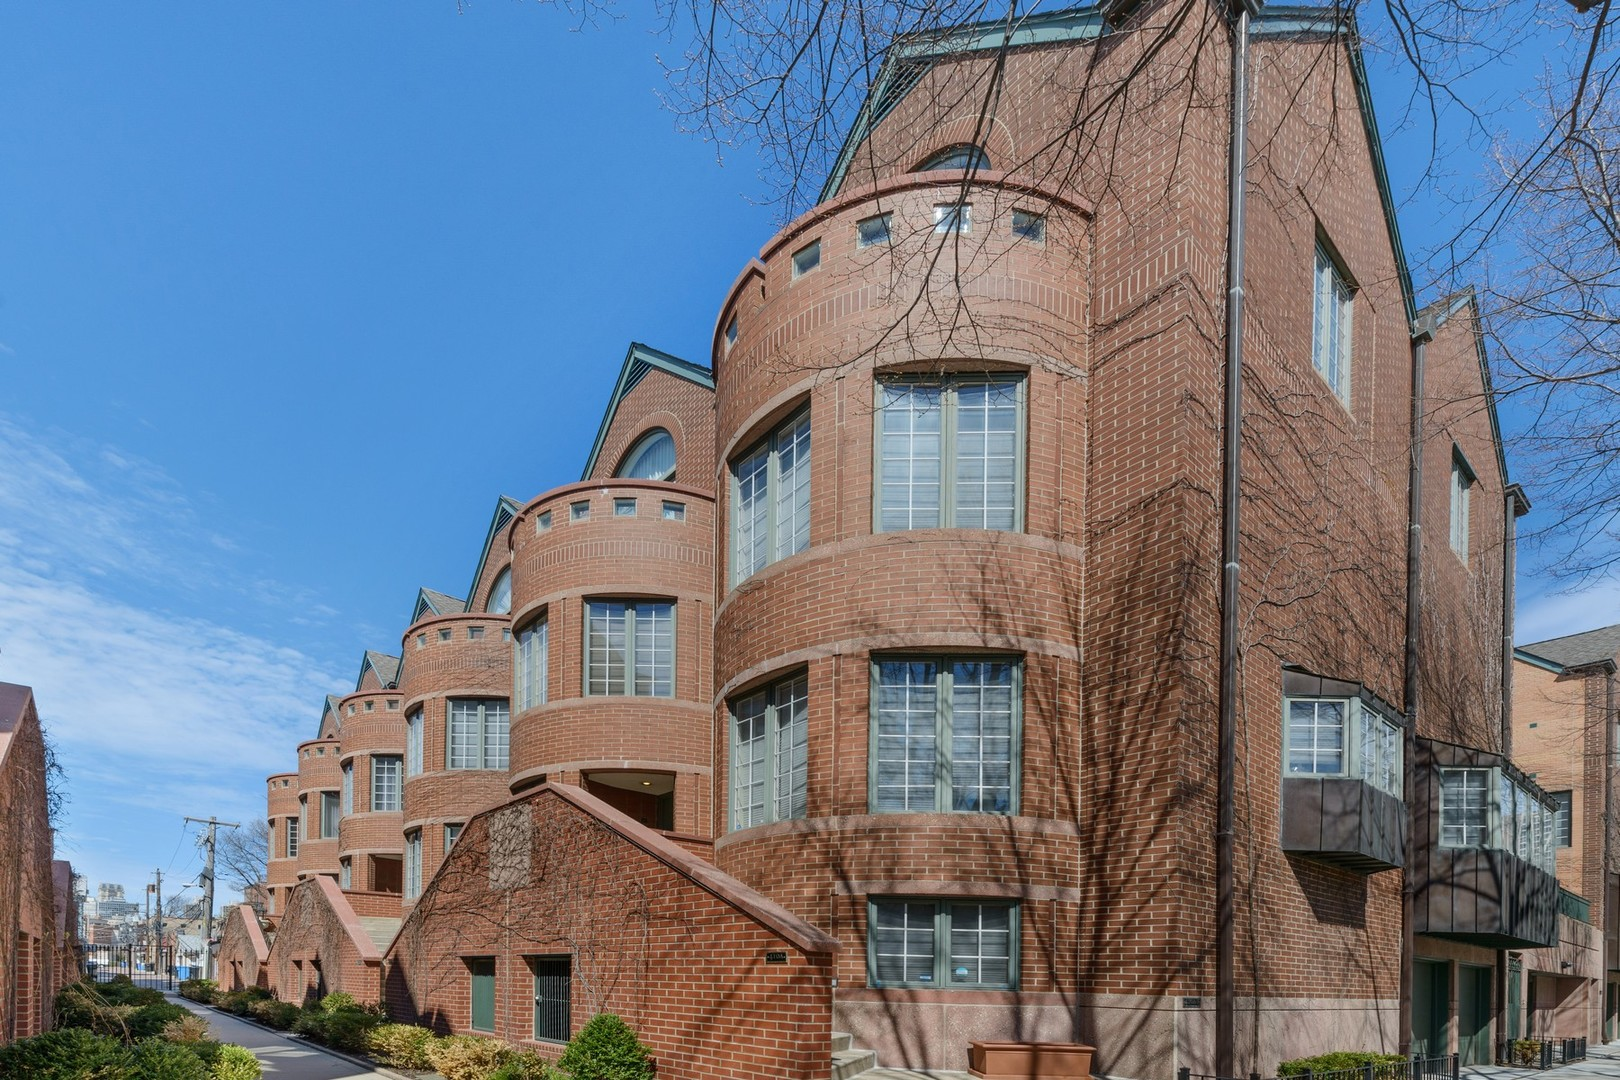 Beautifully upgraded townhome in highly coveted Belgravia Terrace  Townhome development located in t